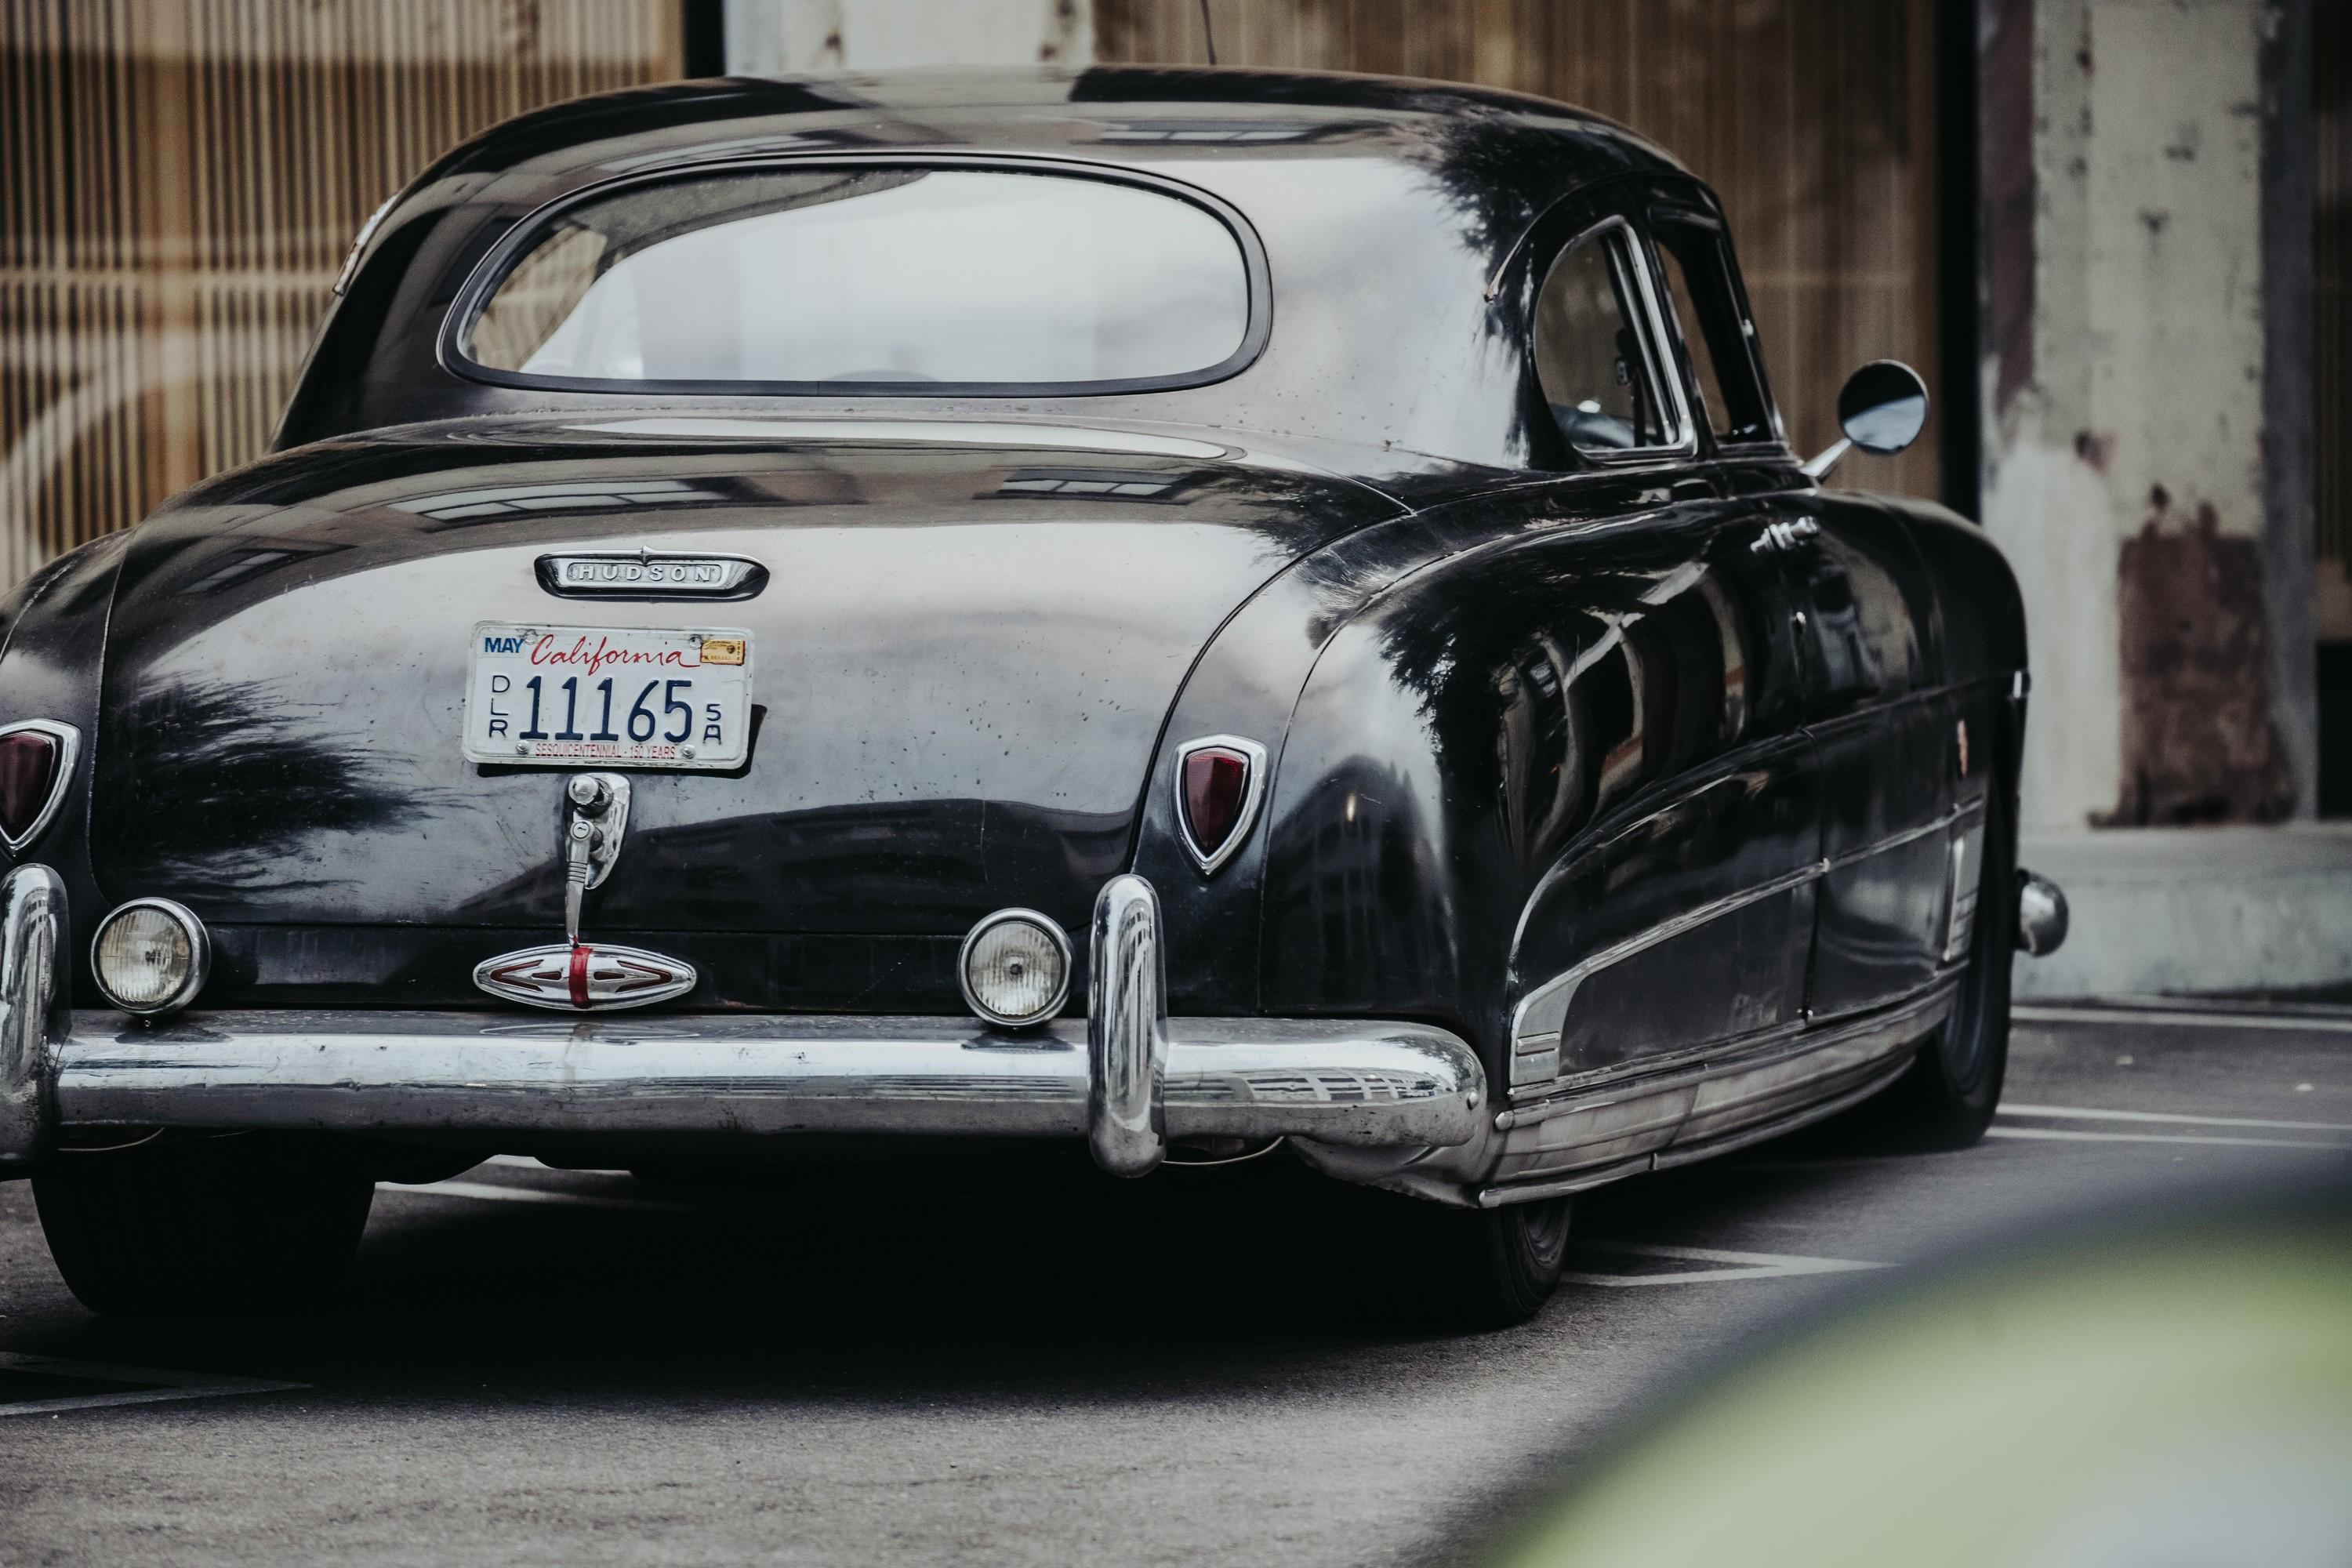 icon-hudson-derelict-body-curves-dtl-img-0921